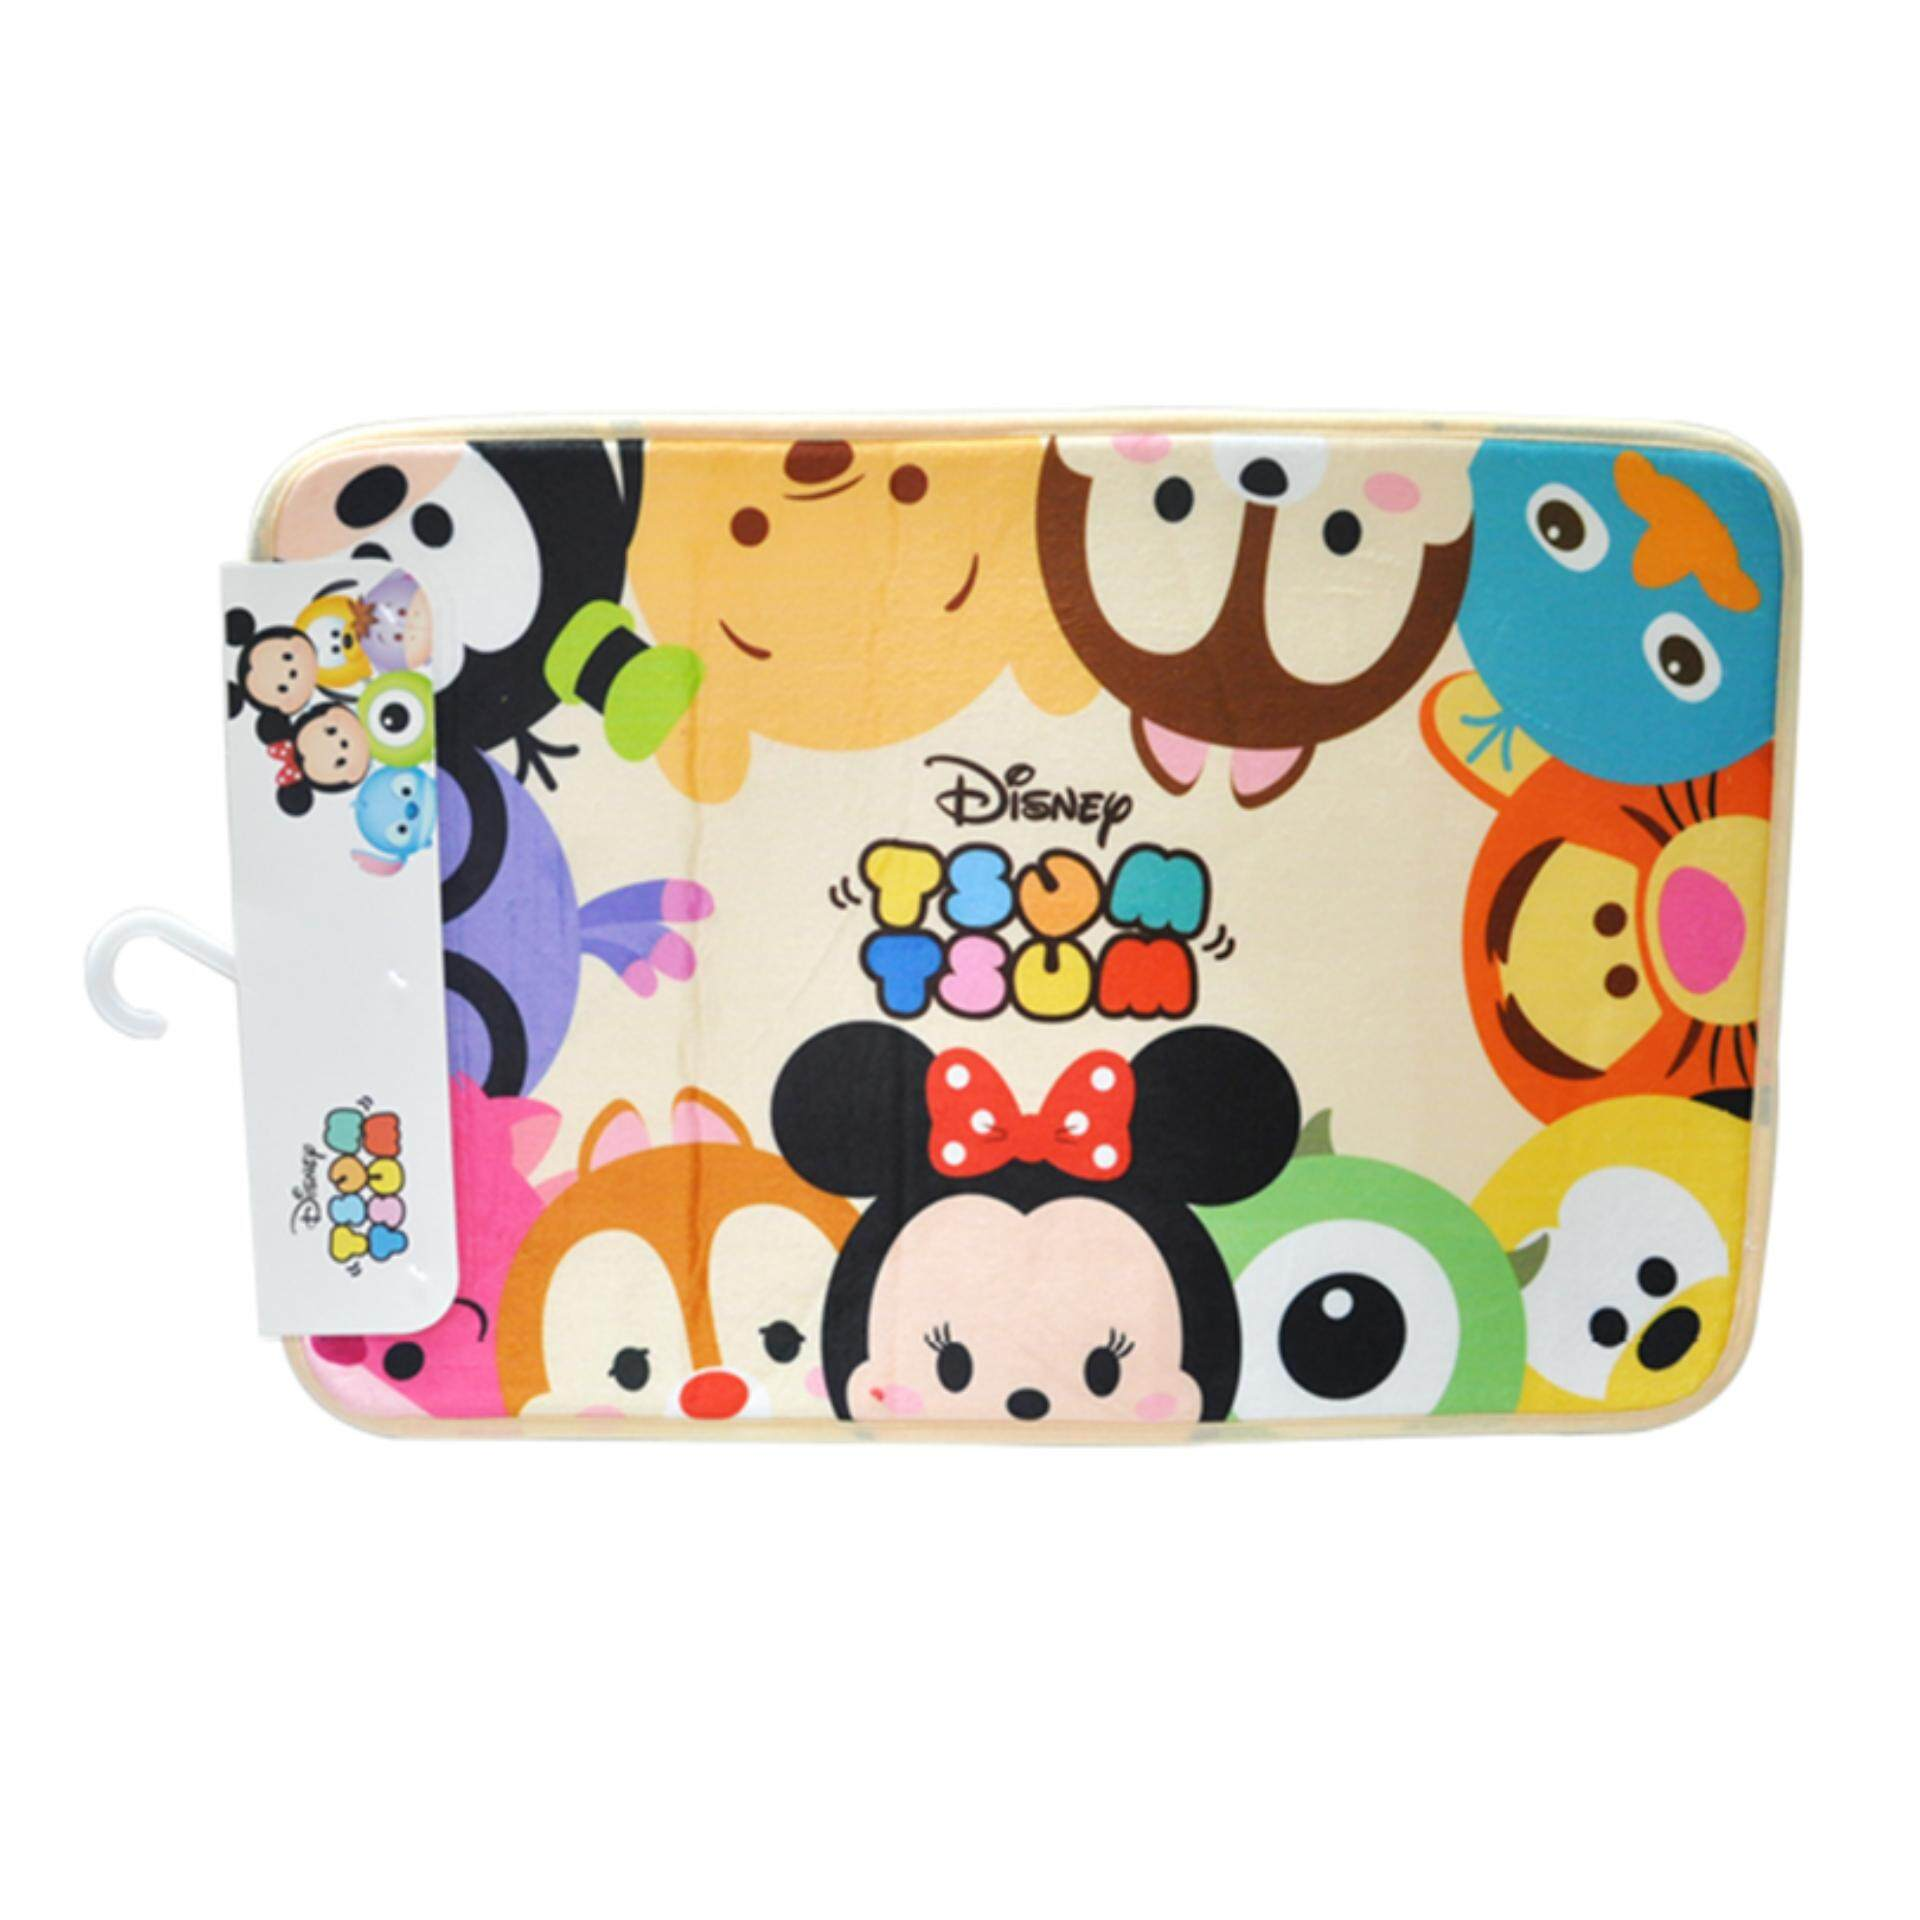 Disney Tsum Tsum Square Floor Mat - Beige Colour